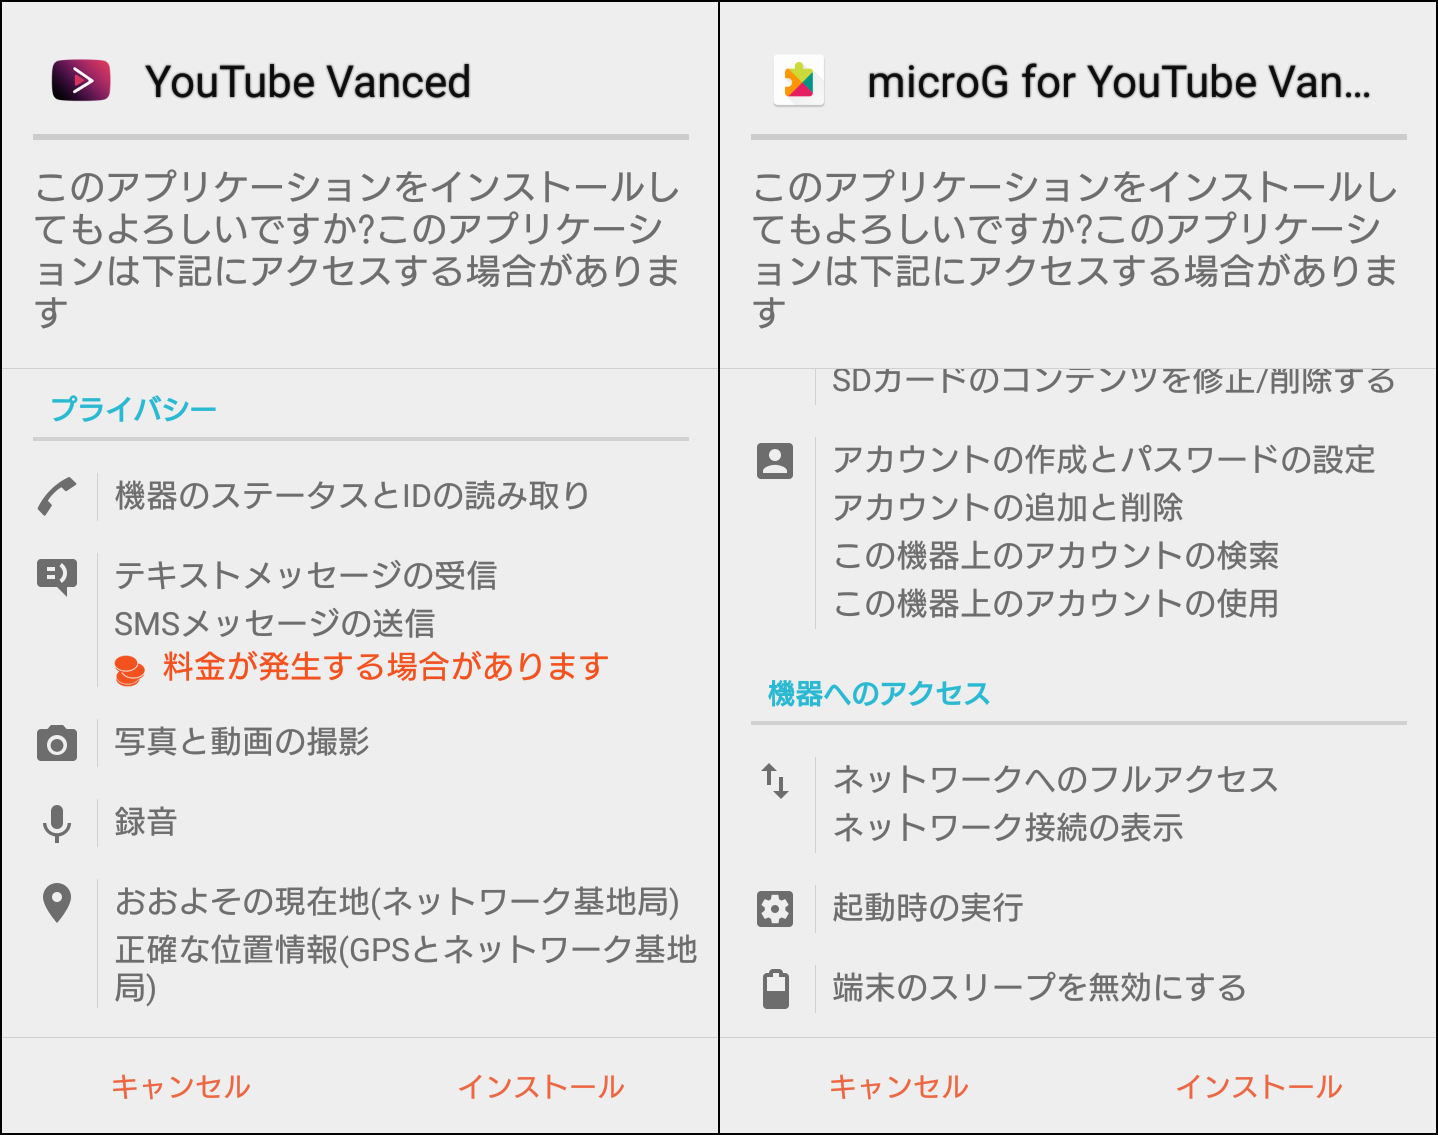 YouTube Vanced EditionとMicroG for YouTube Vancedのインストール画面